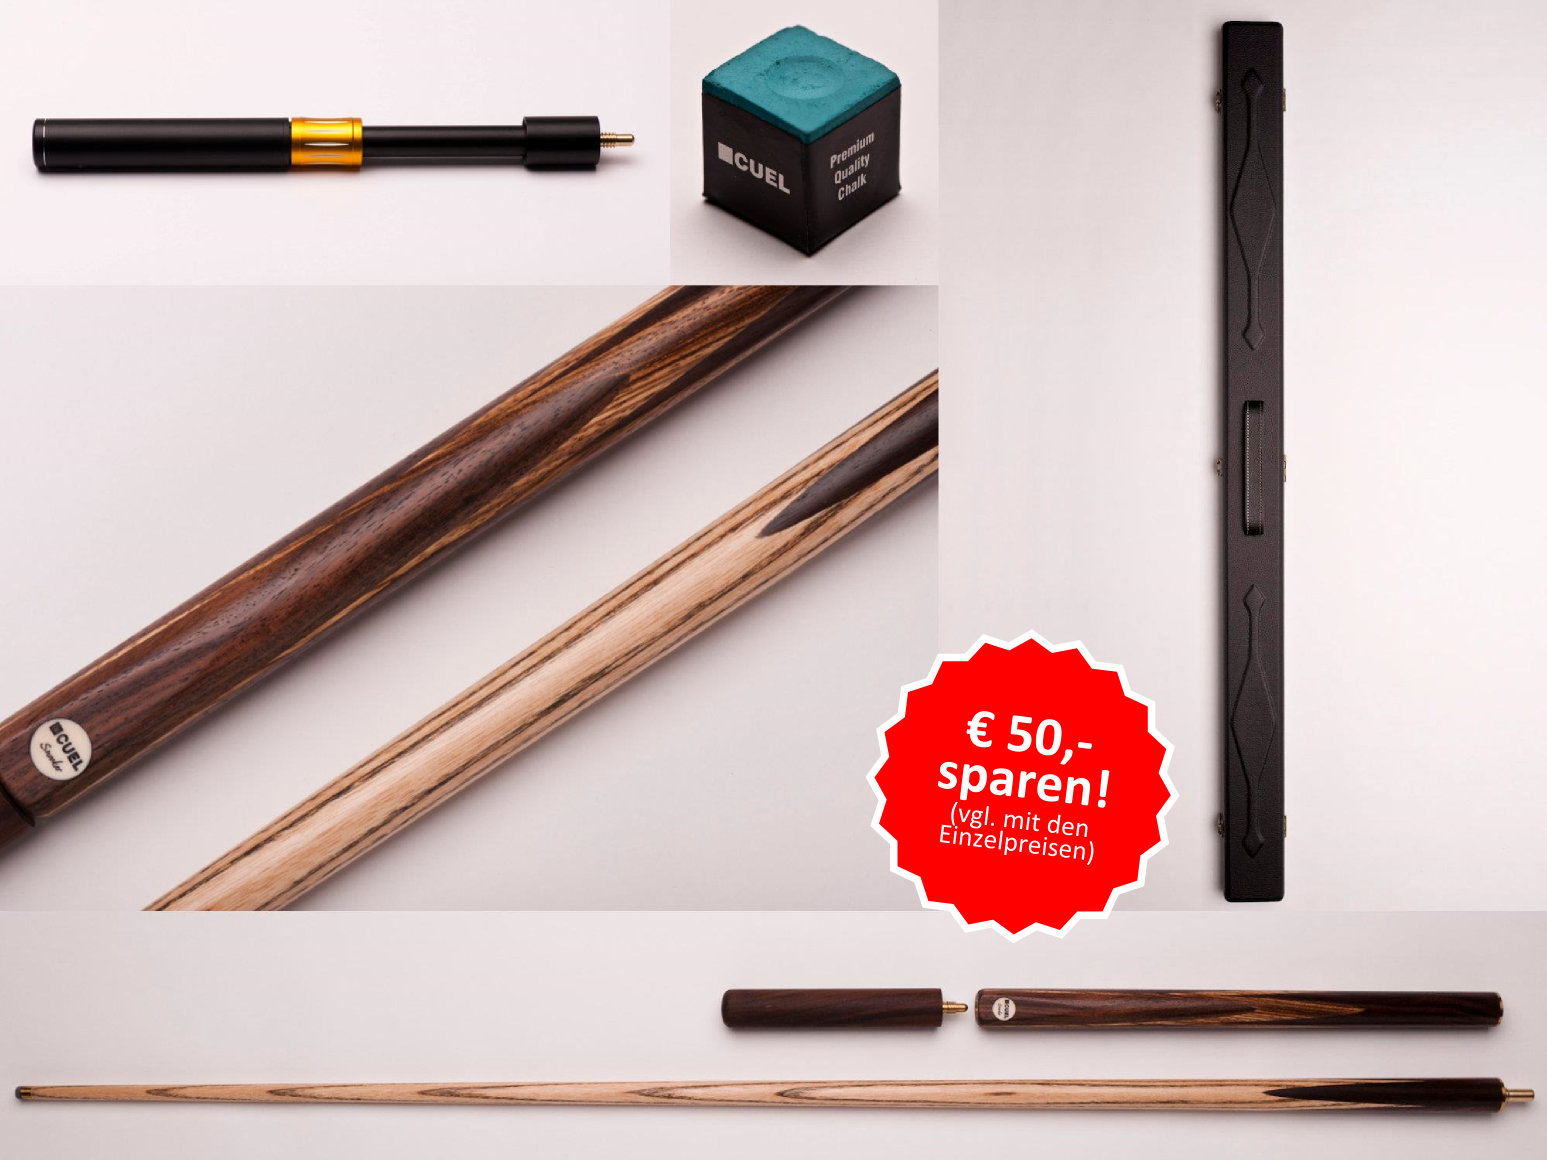 Snooker-Profiangebot: 1 Queue + 1 Koffer + Extension + 1 Stück Kreide